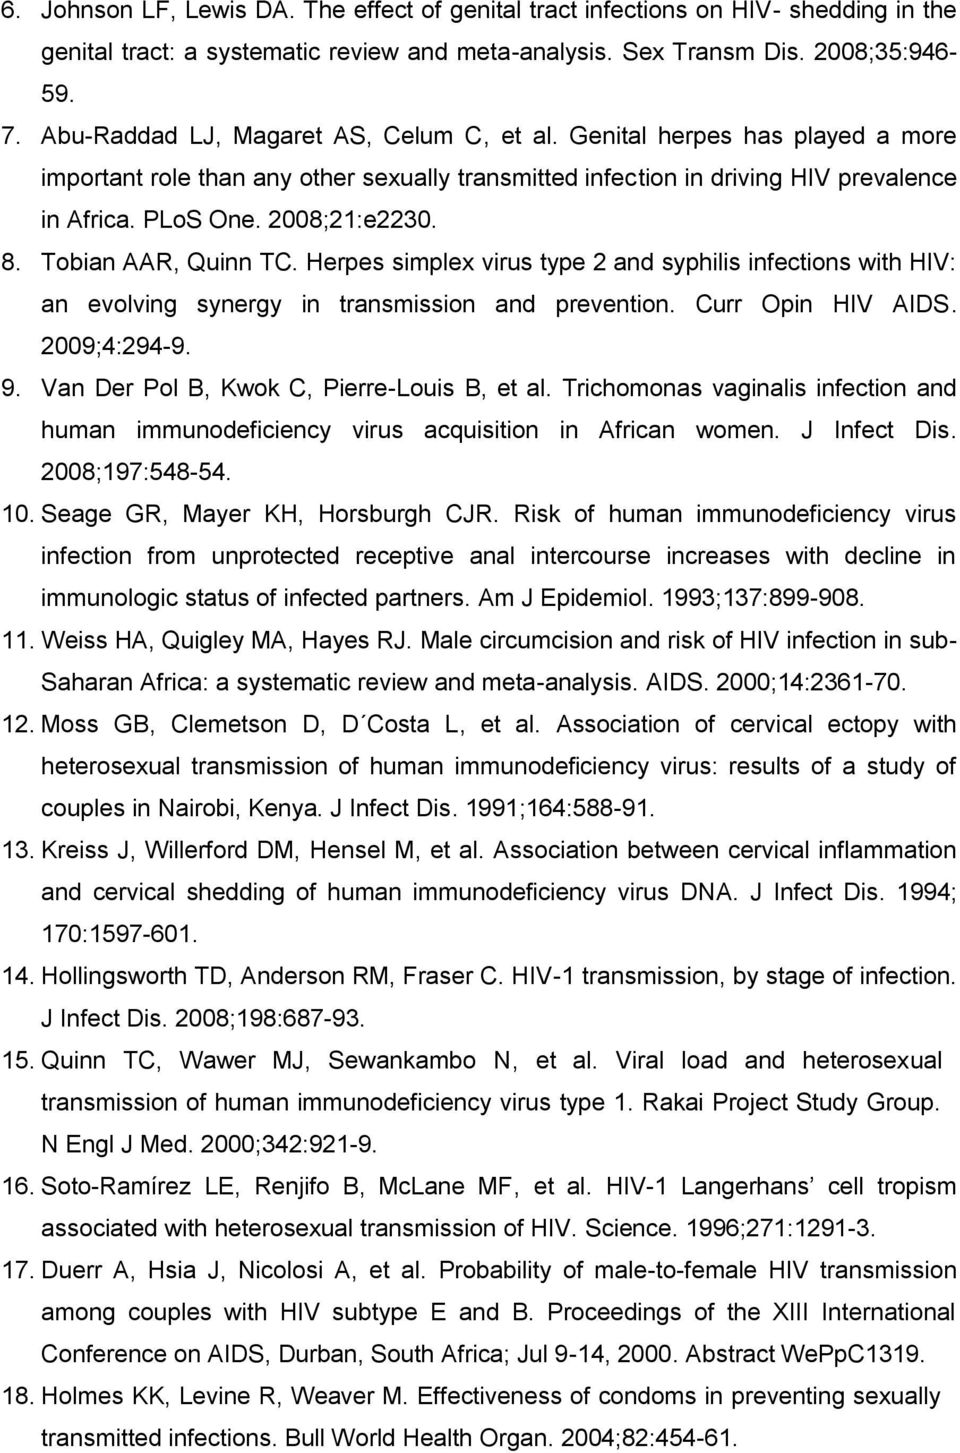 8. Tobian AAR, Quinn TC. Herpes simplex virus type 2 and syphilis infections with HIV: an evolving synergy in transmission and prevention. Curr Opin HIV AIDS. 2009;4:294-9. 9.